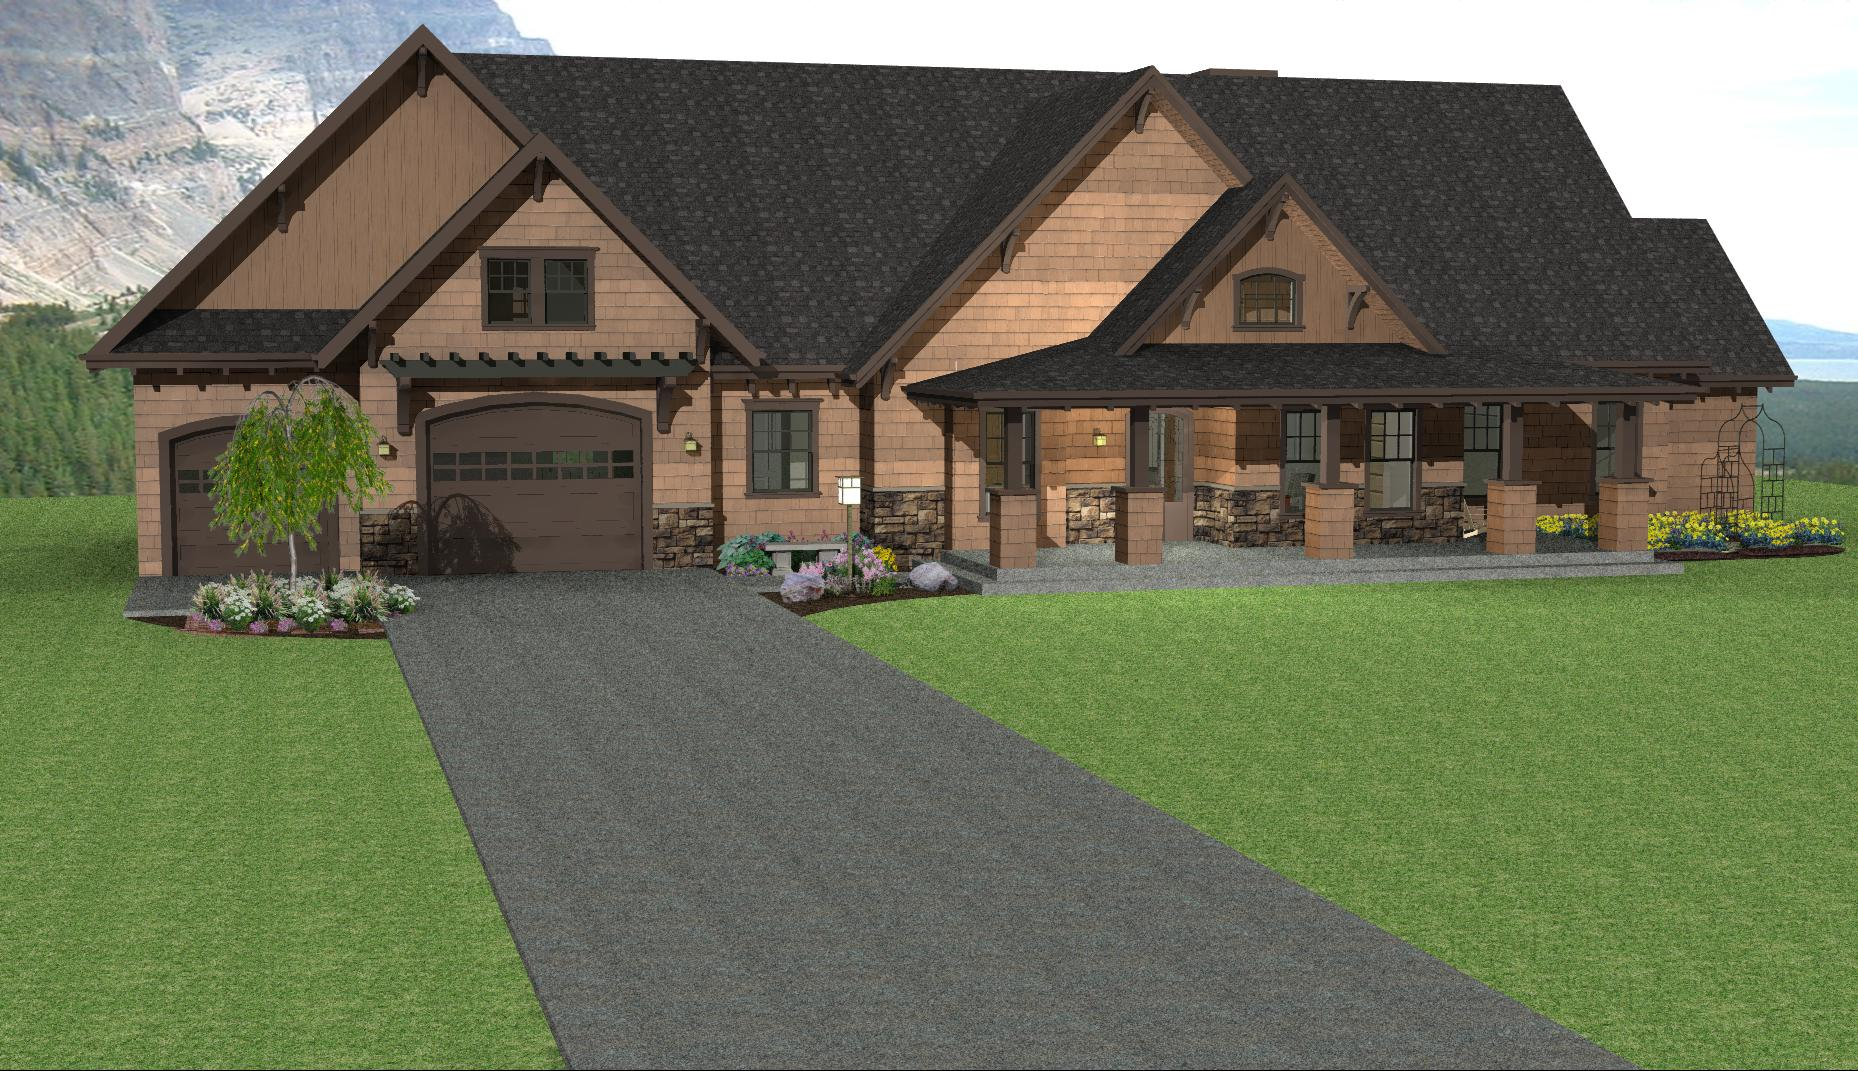 Ranch style home designs find house plans for Ranch style home plans